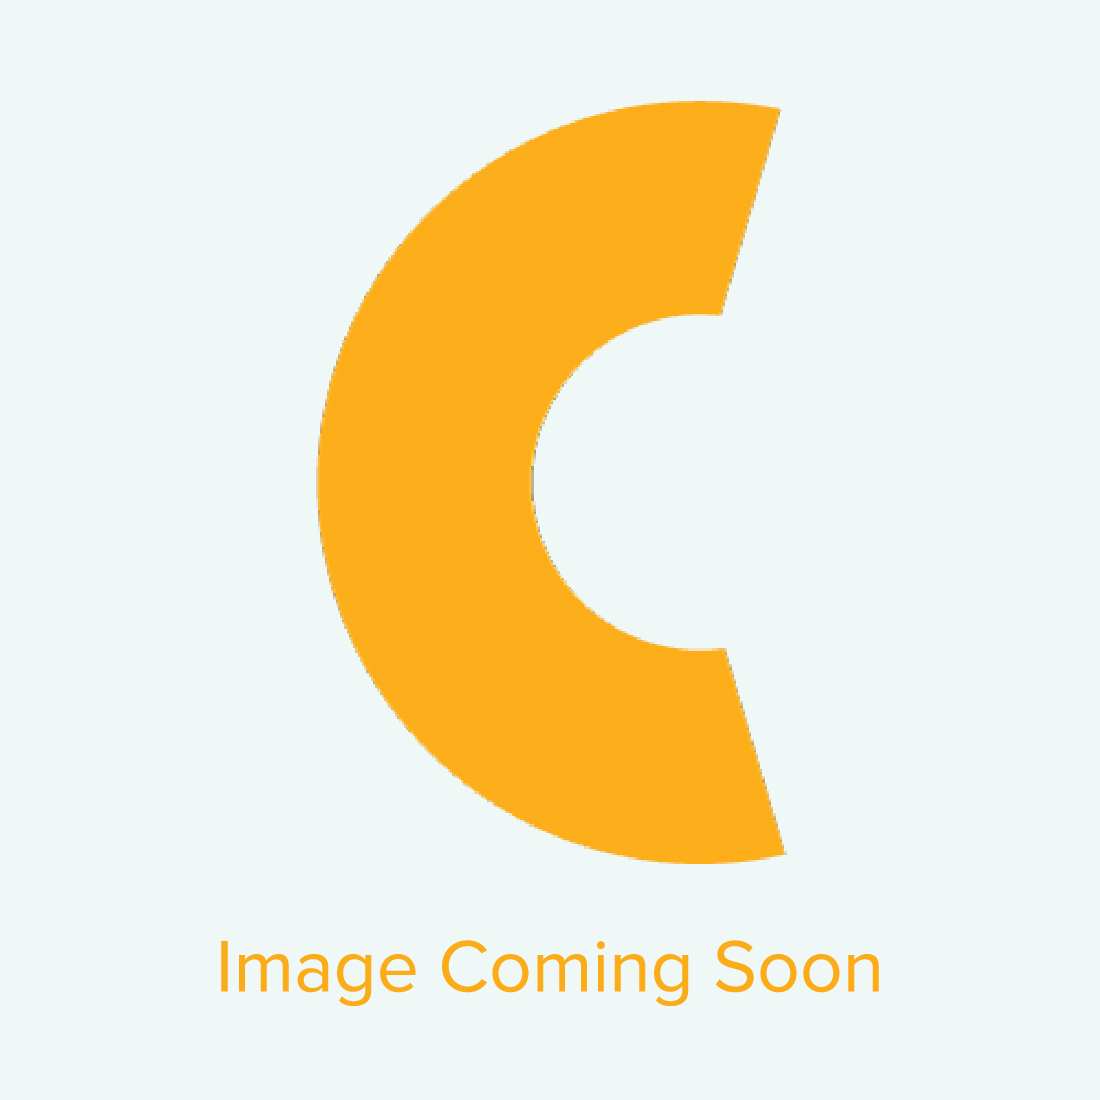 FOREVER Laser Dark A-Foil Replacement Sheets